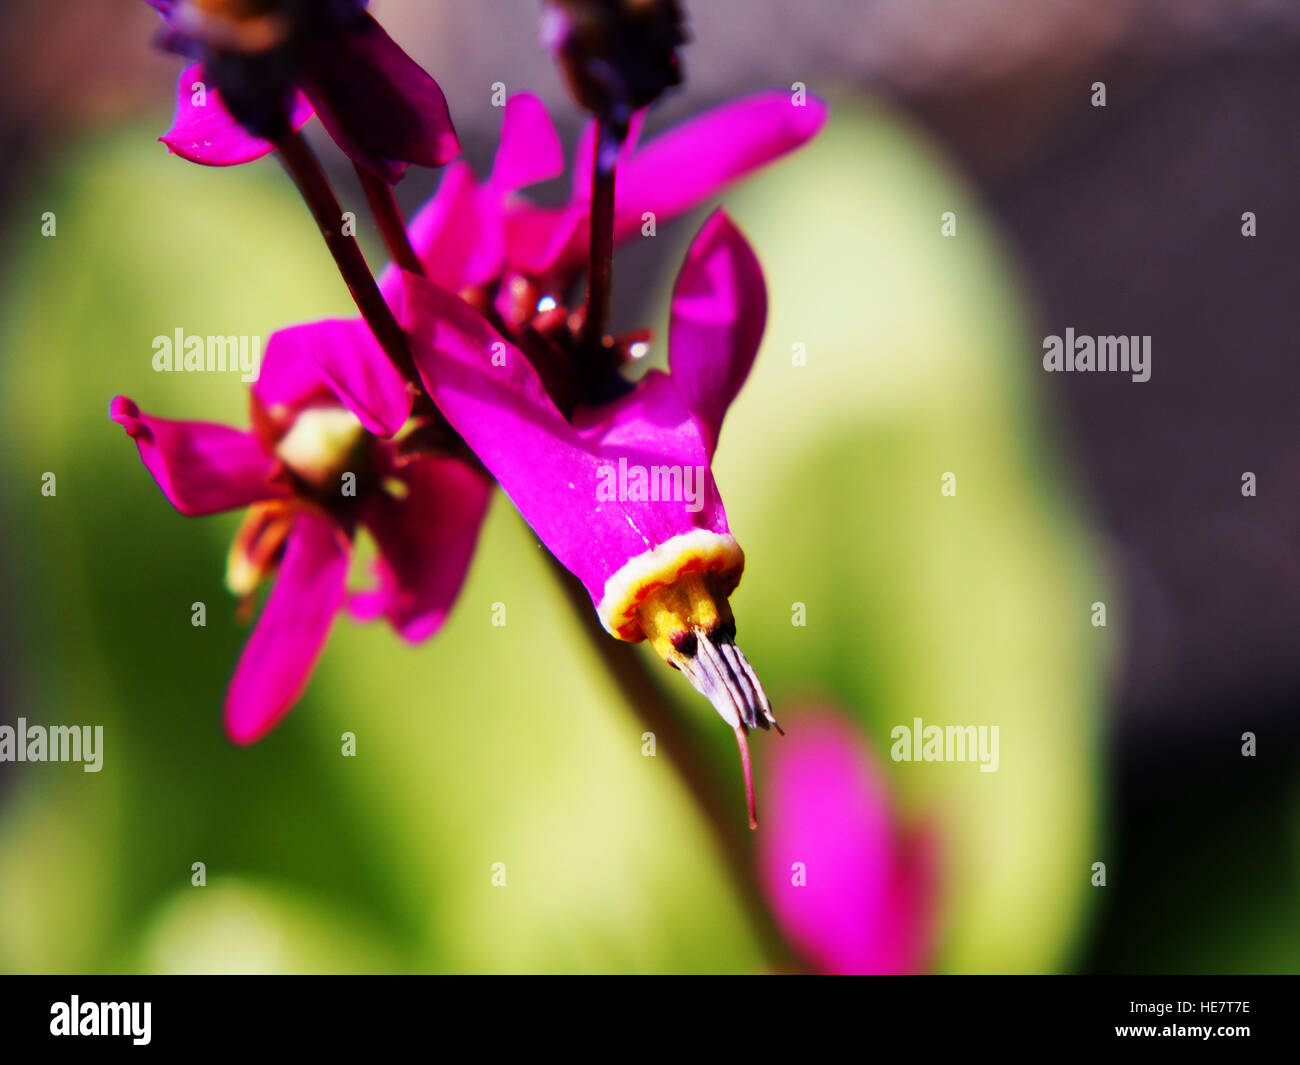 Dodecatheon meadia in full bloom - Stock Image